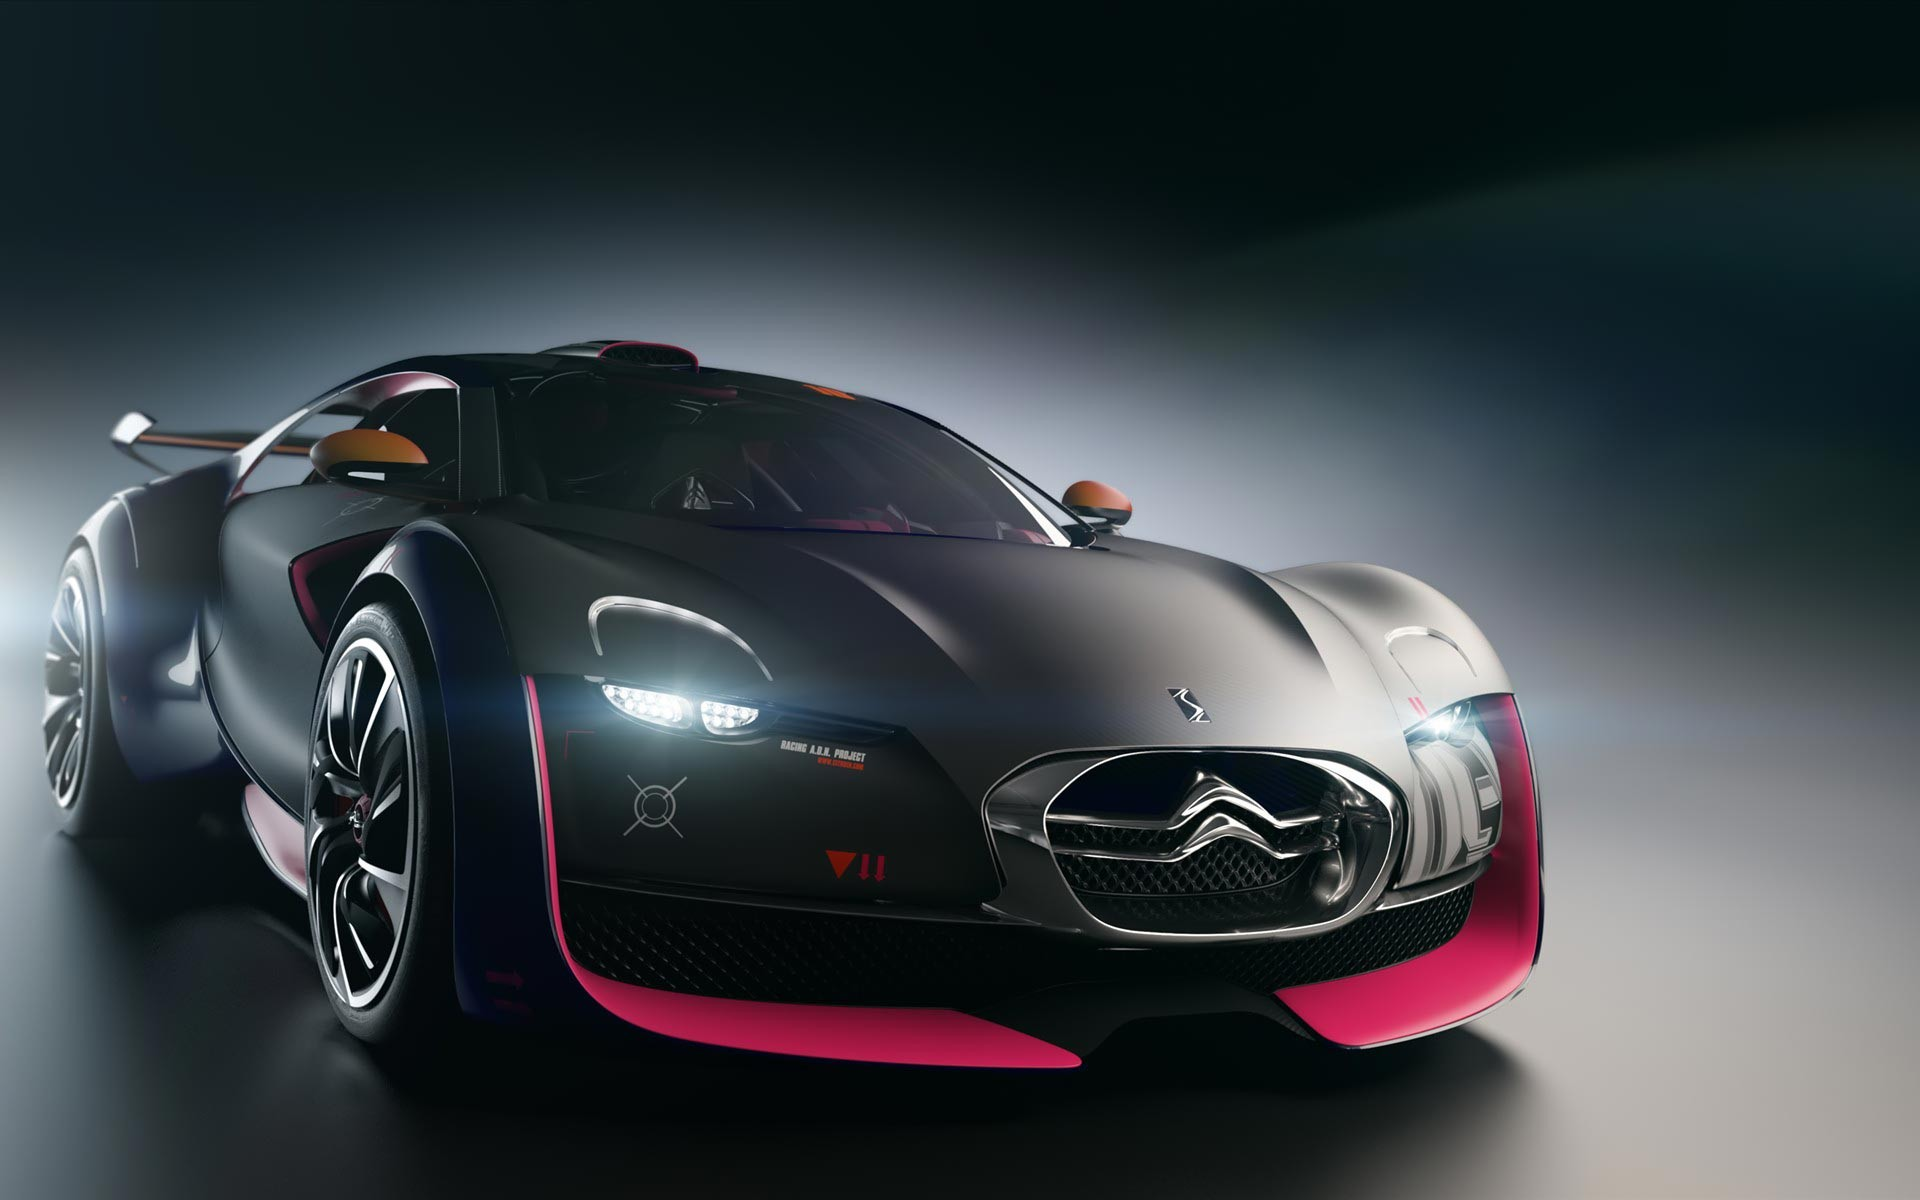 Exotic Citroen You are viewing a Cars Wallpaper